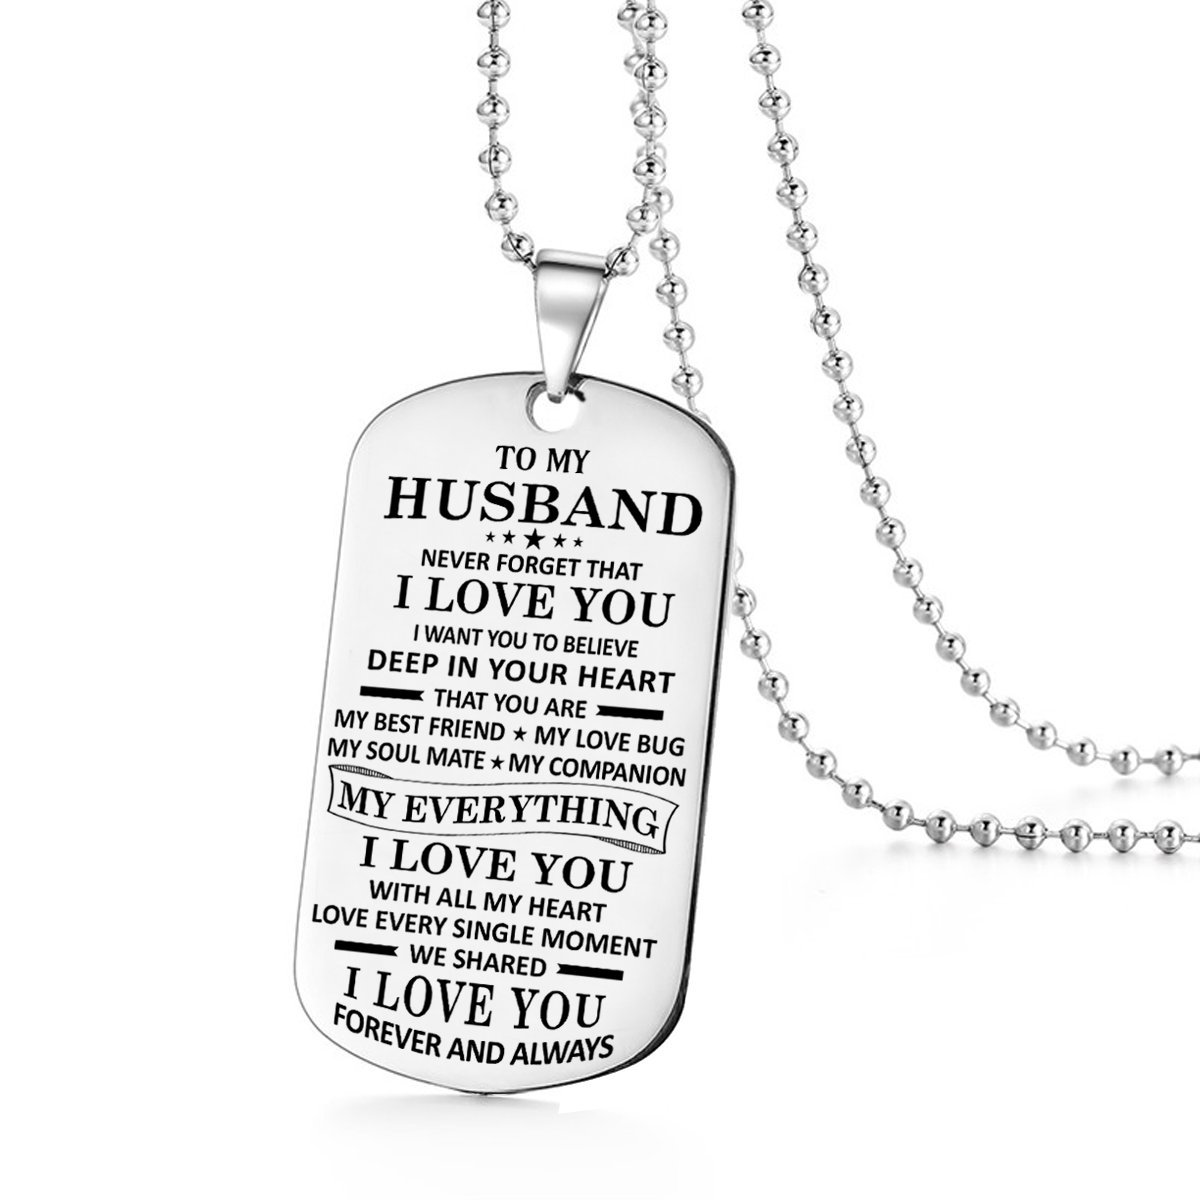 Stashix To My Husband I Love You Forever Dog Tags Necklace From Wife Birthday Gift Jewelry Graduation Military Anniversary for Him Personalized